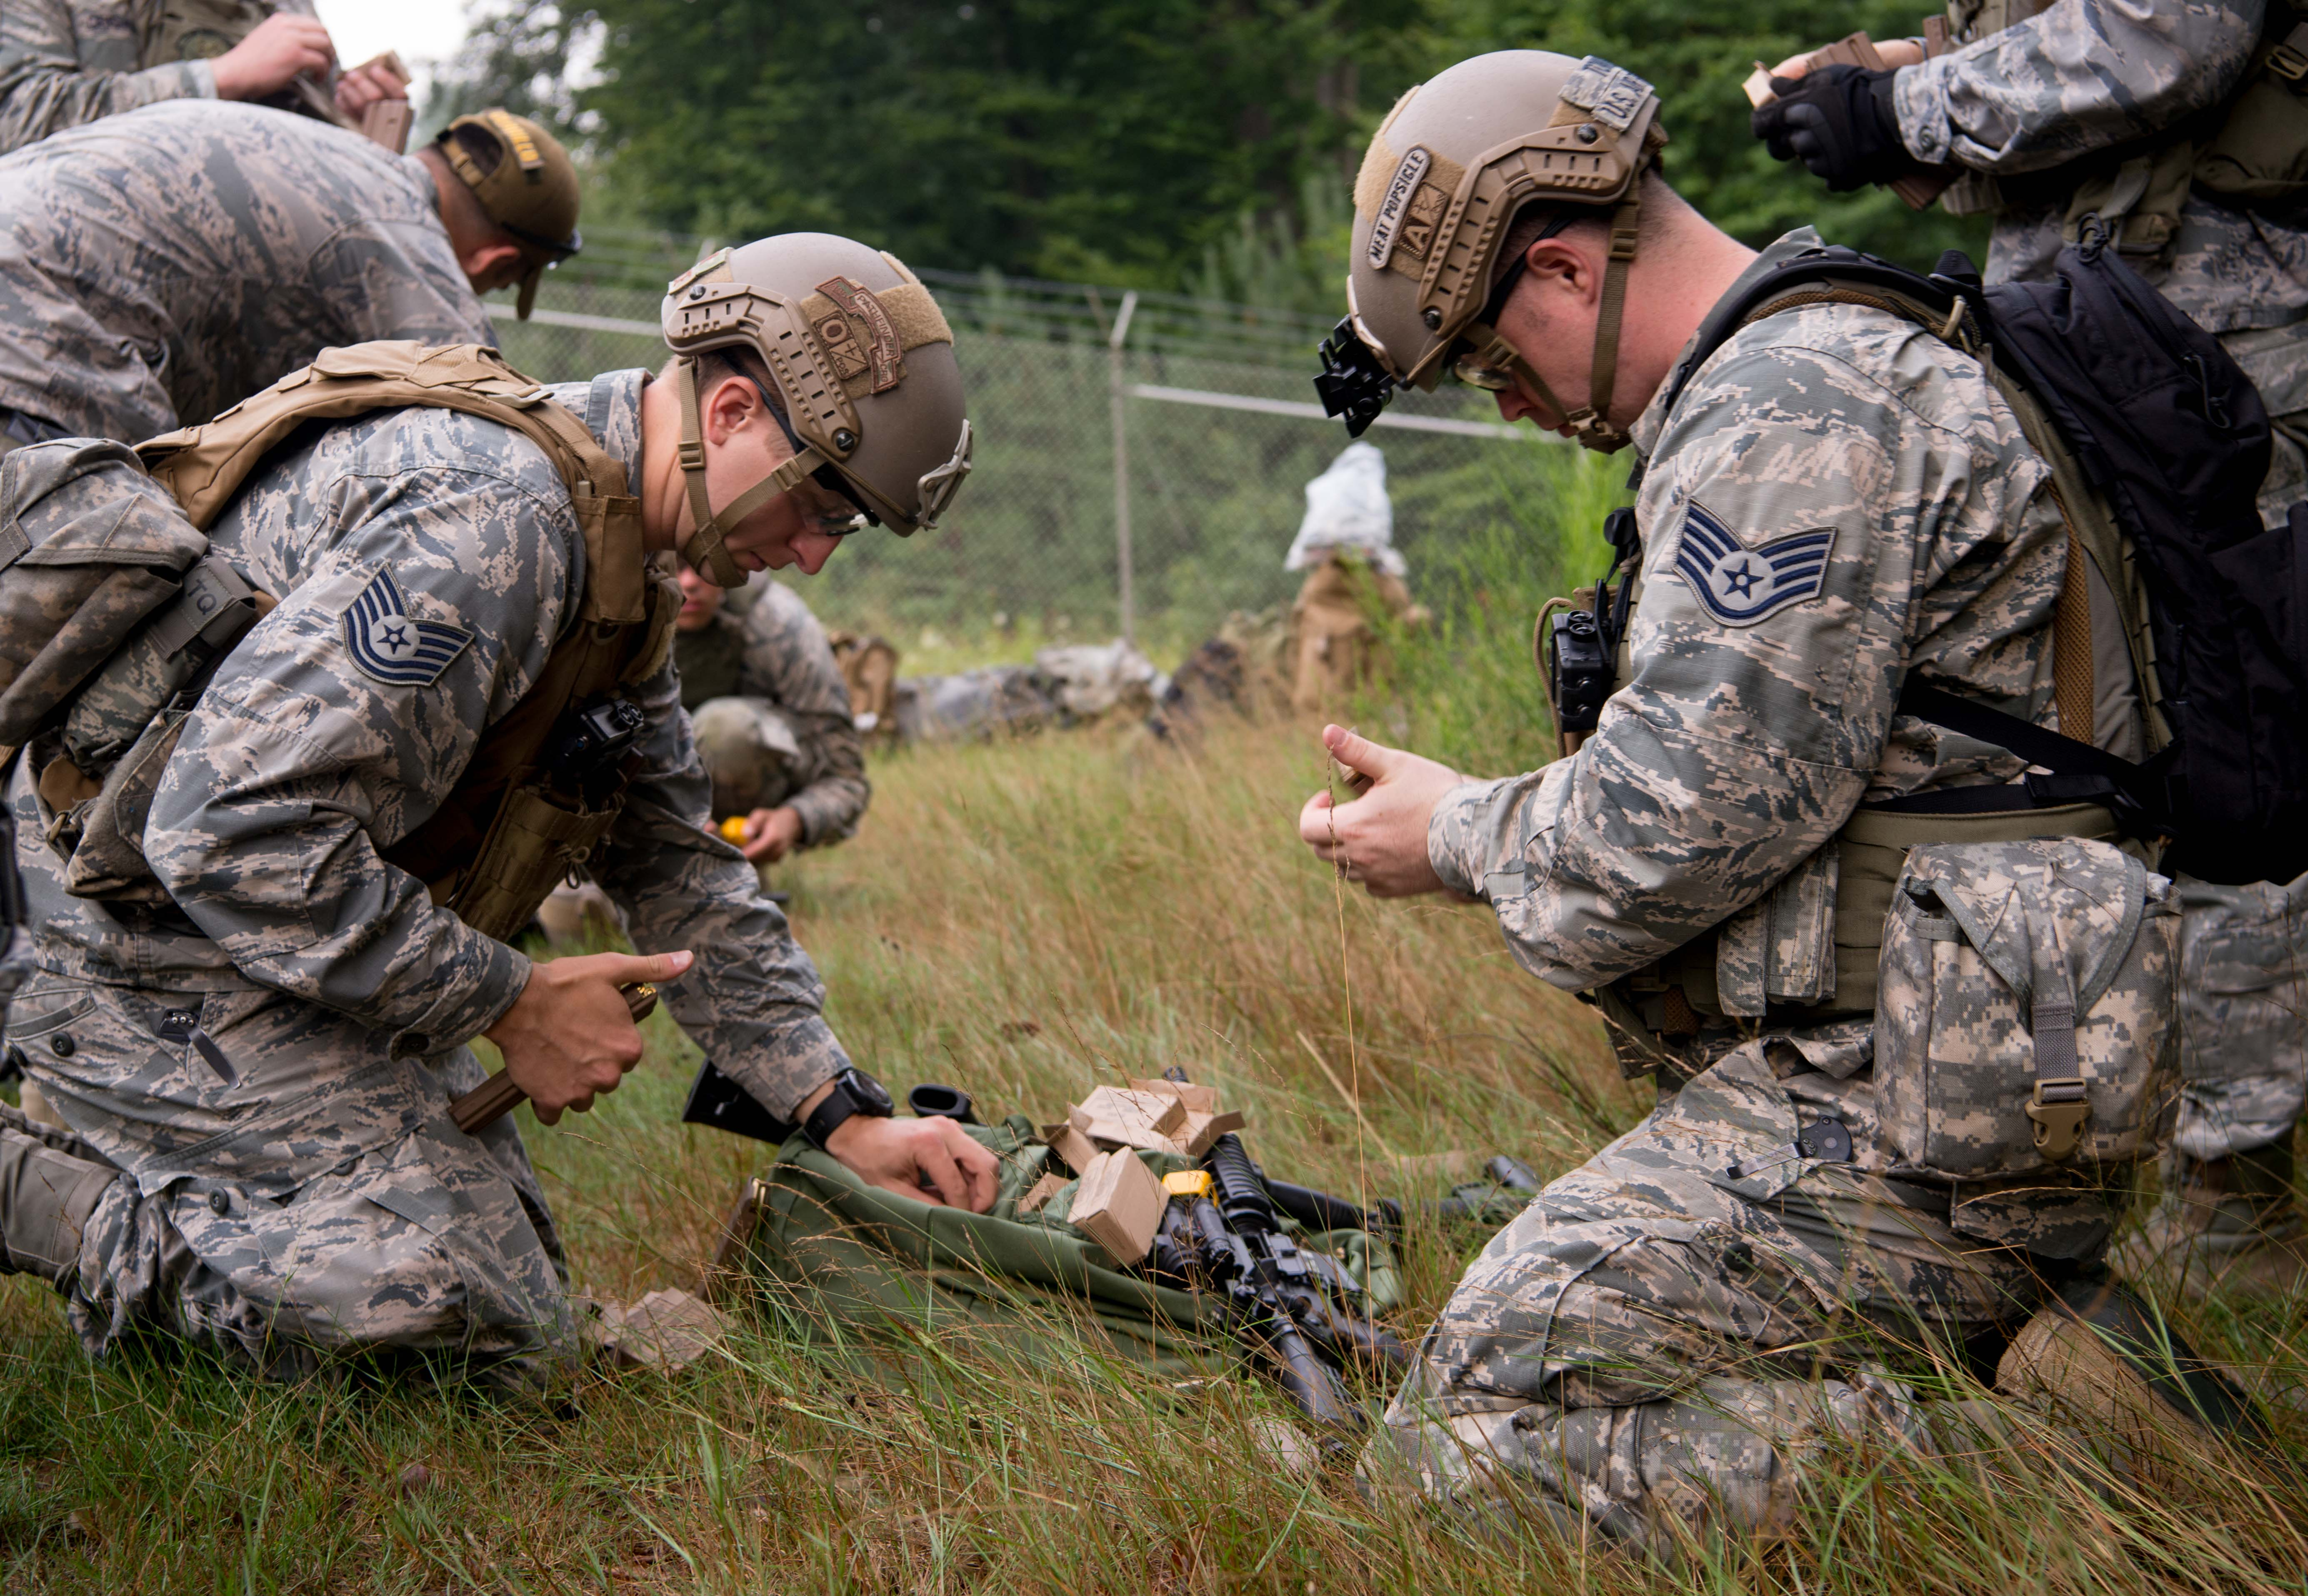 435th CRG trains for contingency down range